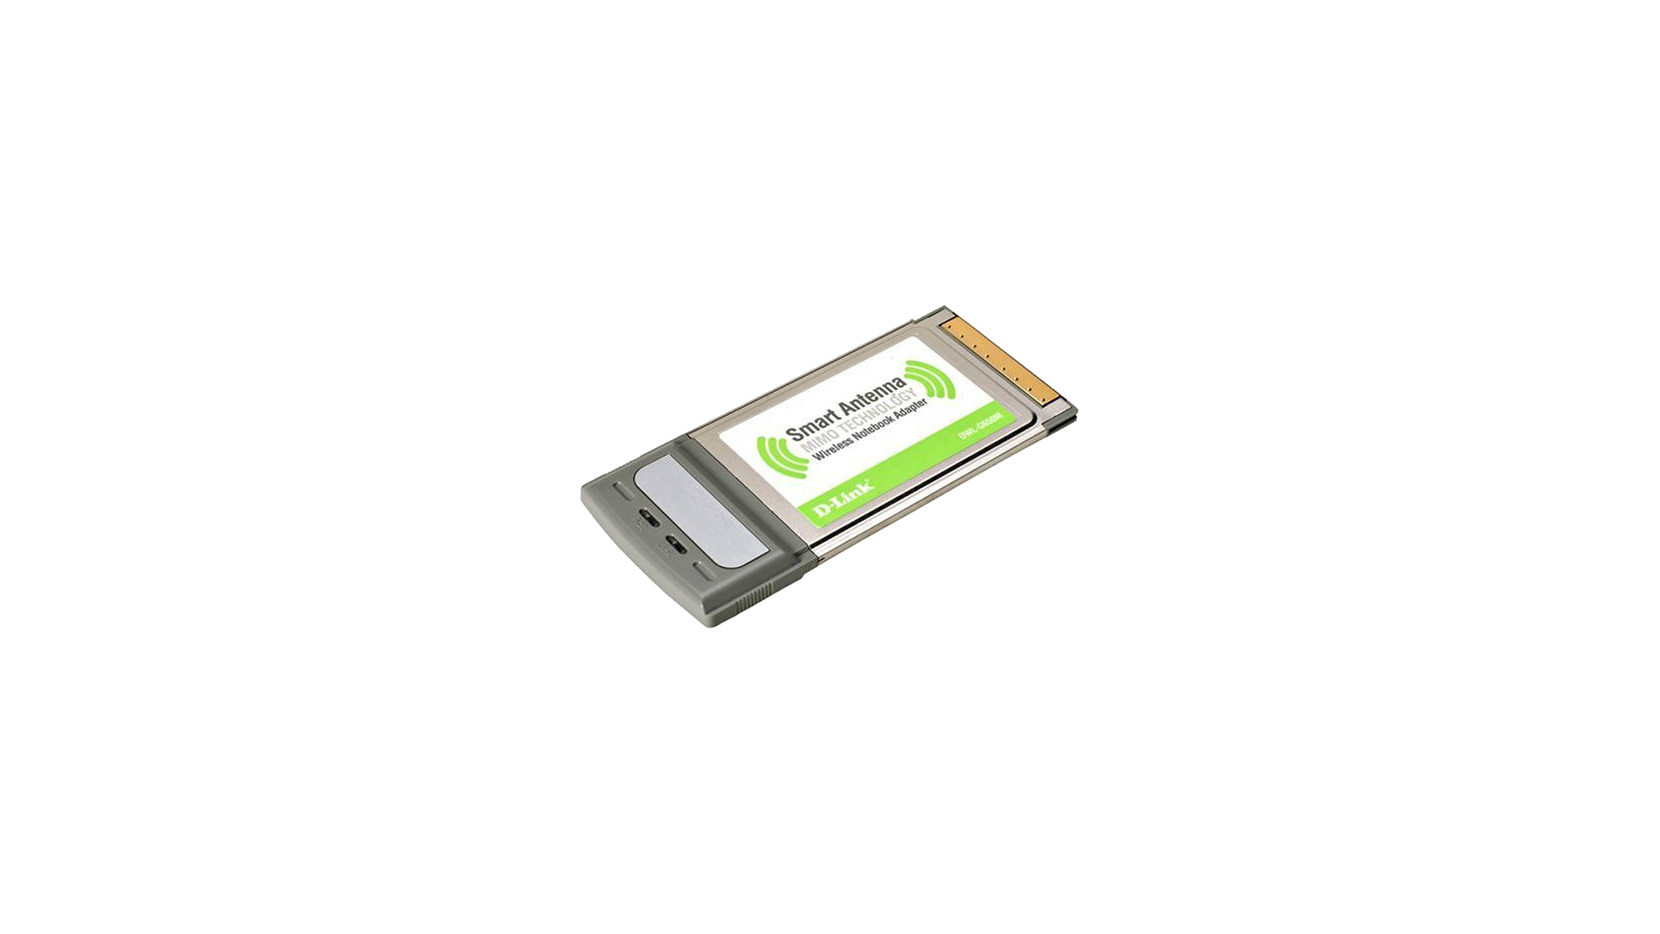 DOWNLOAD DRIVER: MIMO WIRELESS LAN CARDBUS PCMCIA ADAPTER